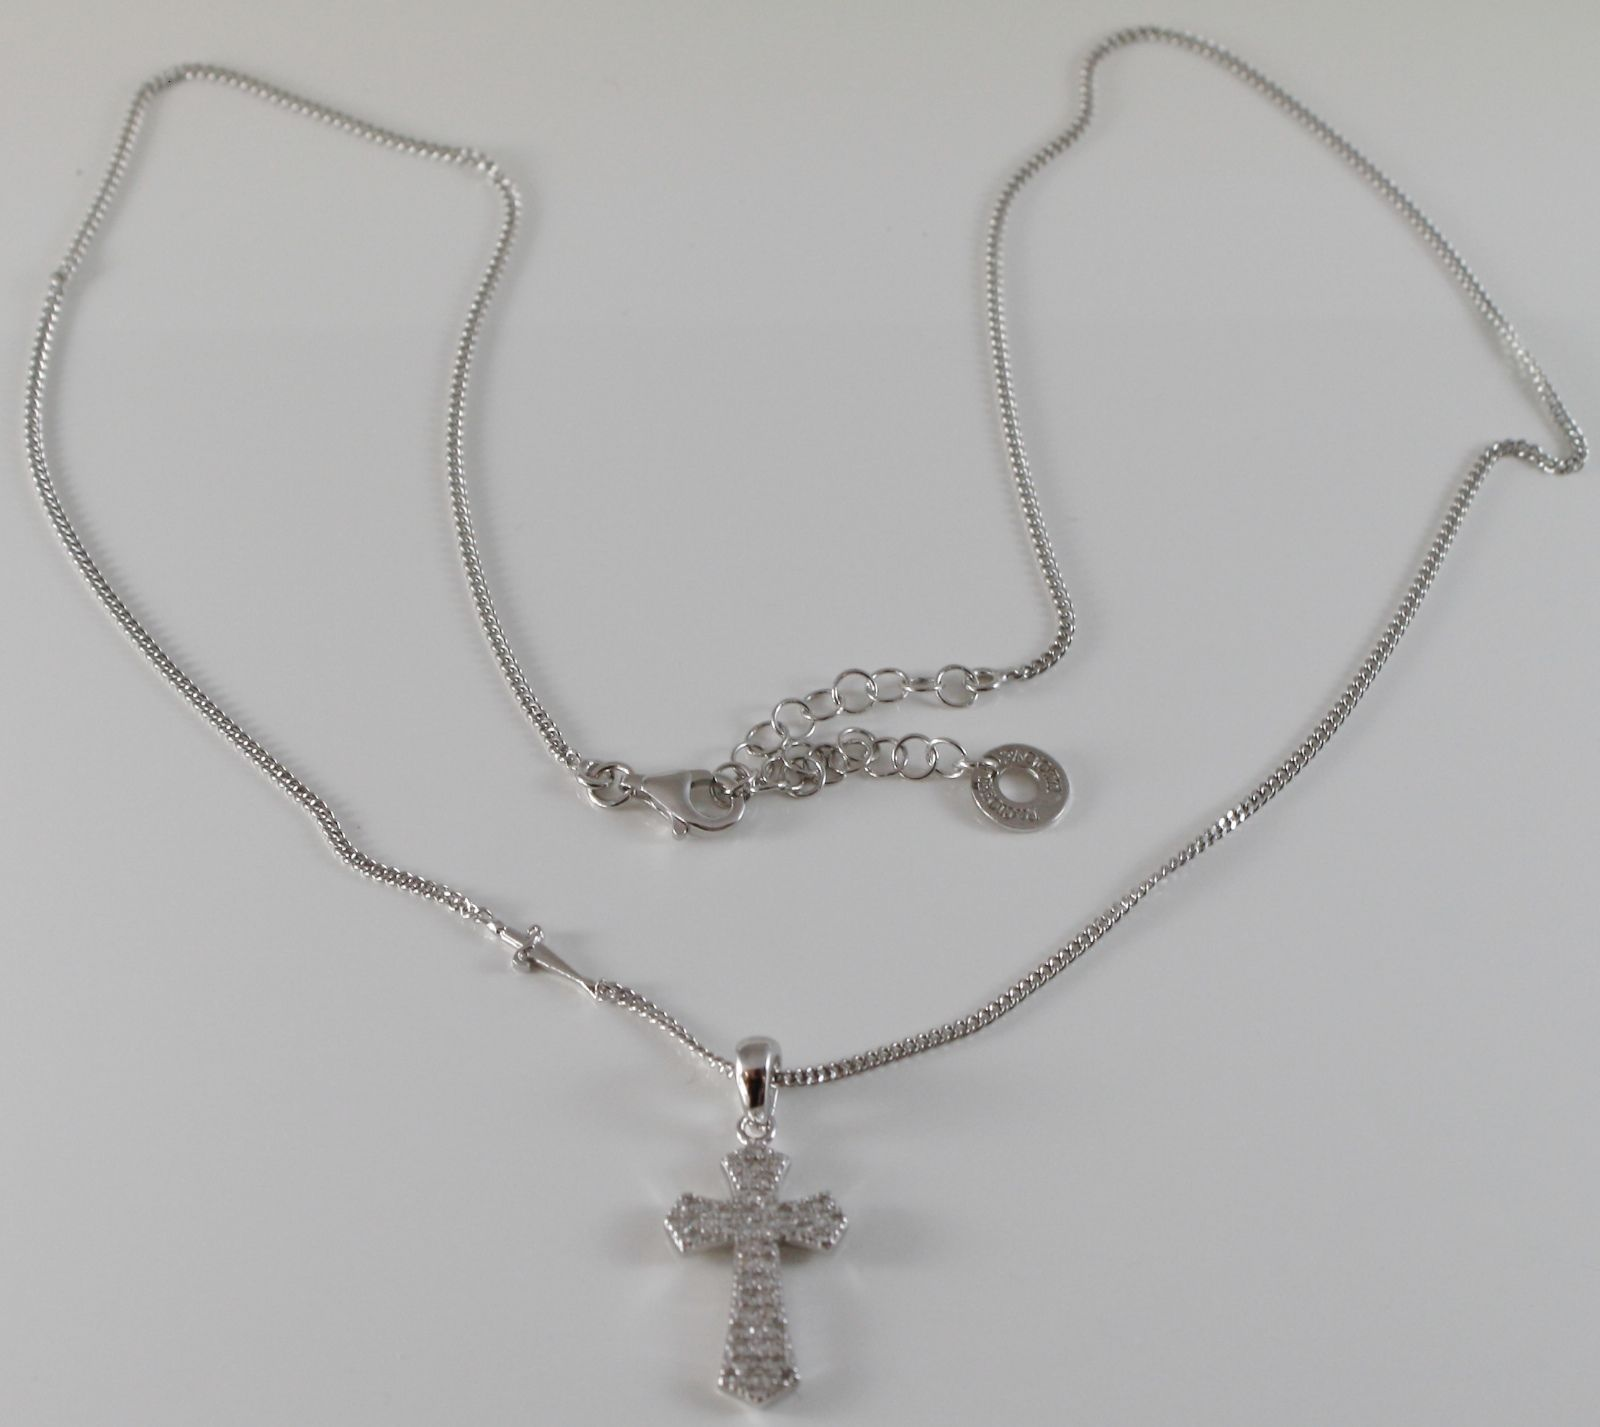 NECKLACE CESARE PACIOTTI 925 SILVER WITH CROSS WITH CUBIC ZIRCON JPCL1342B